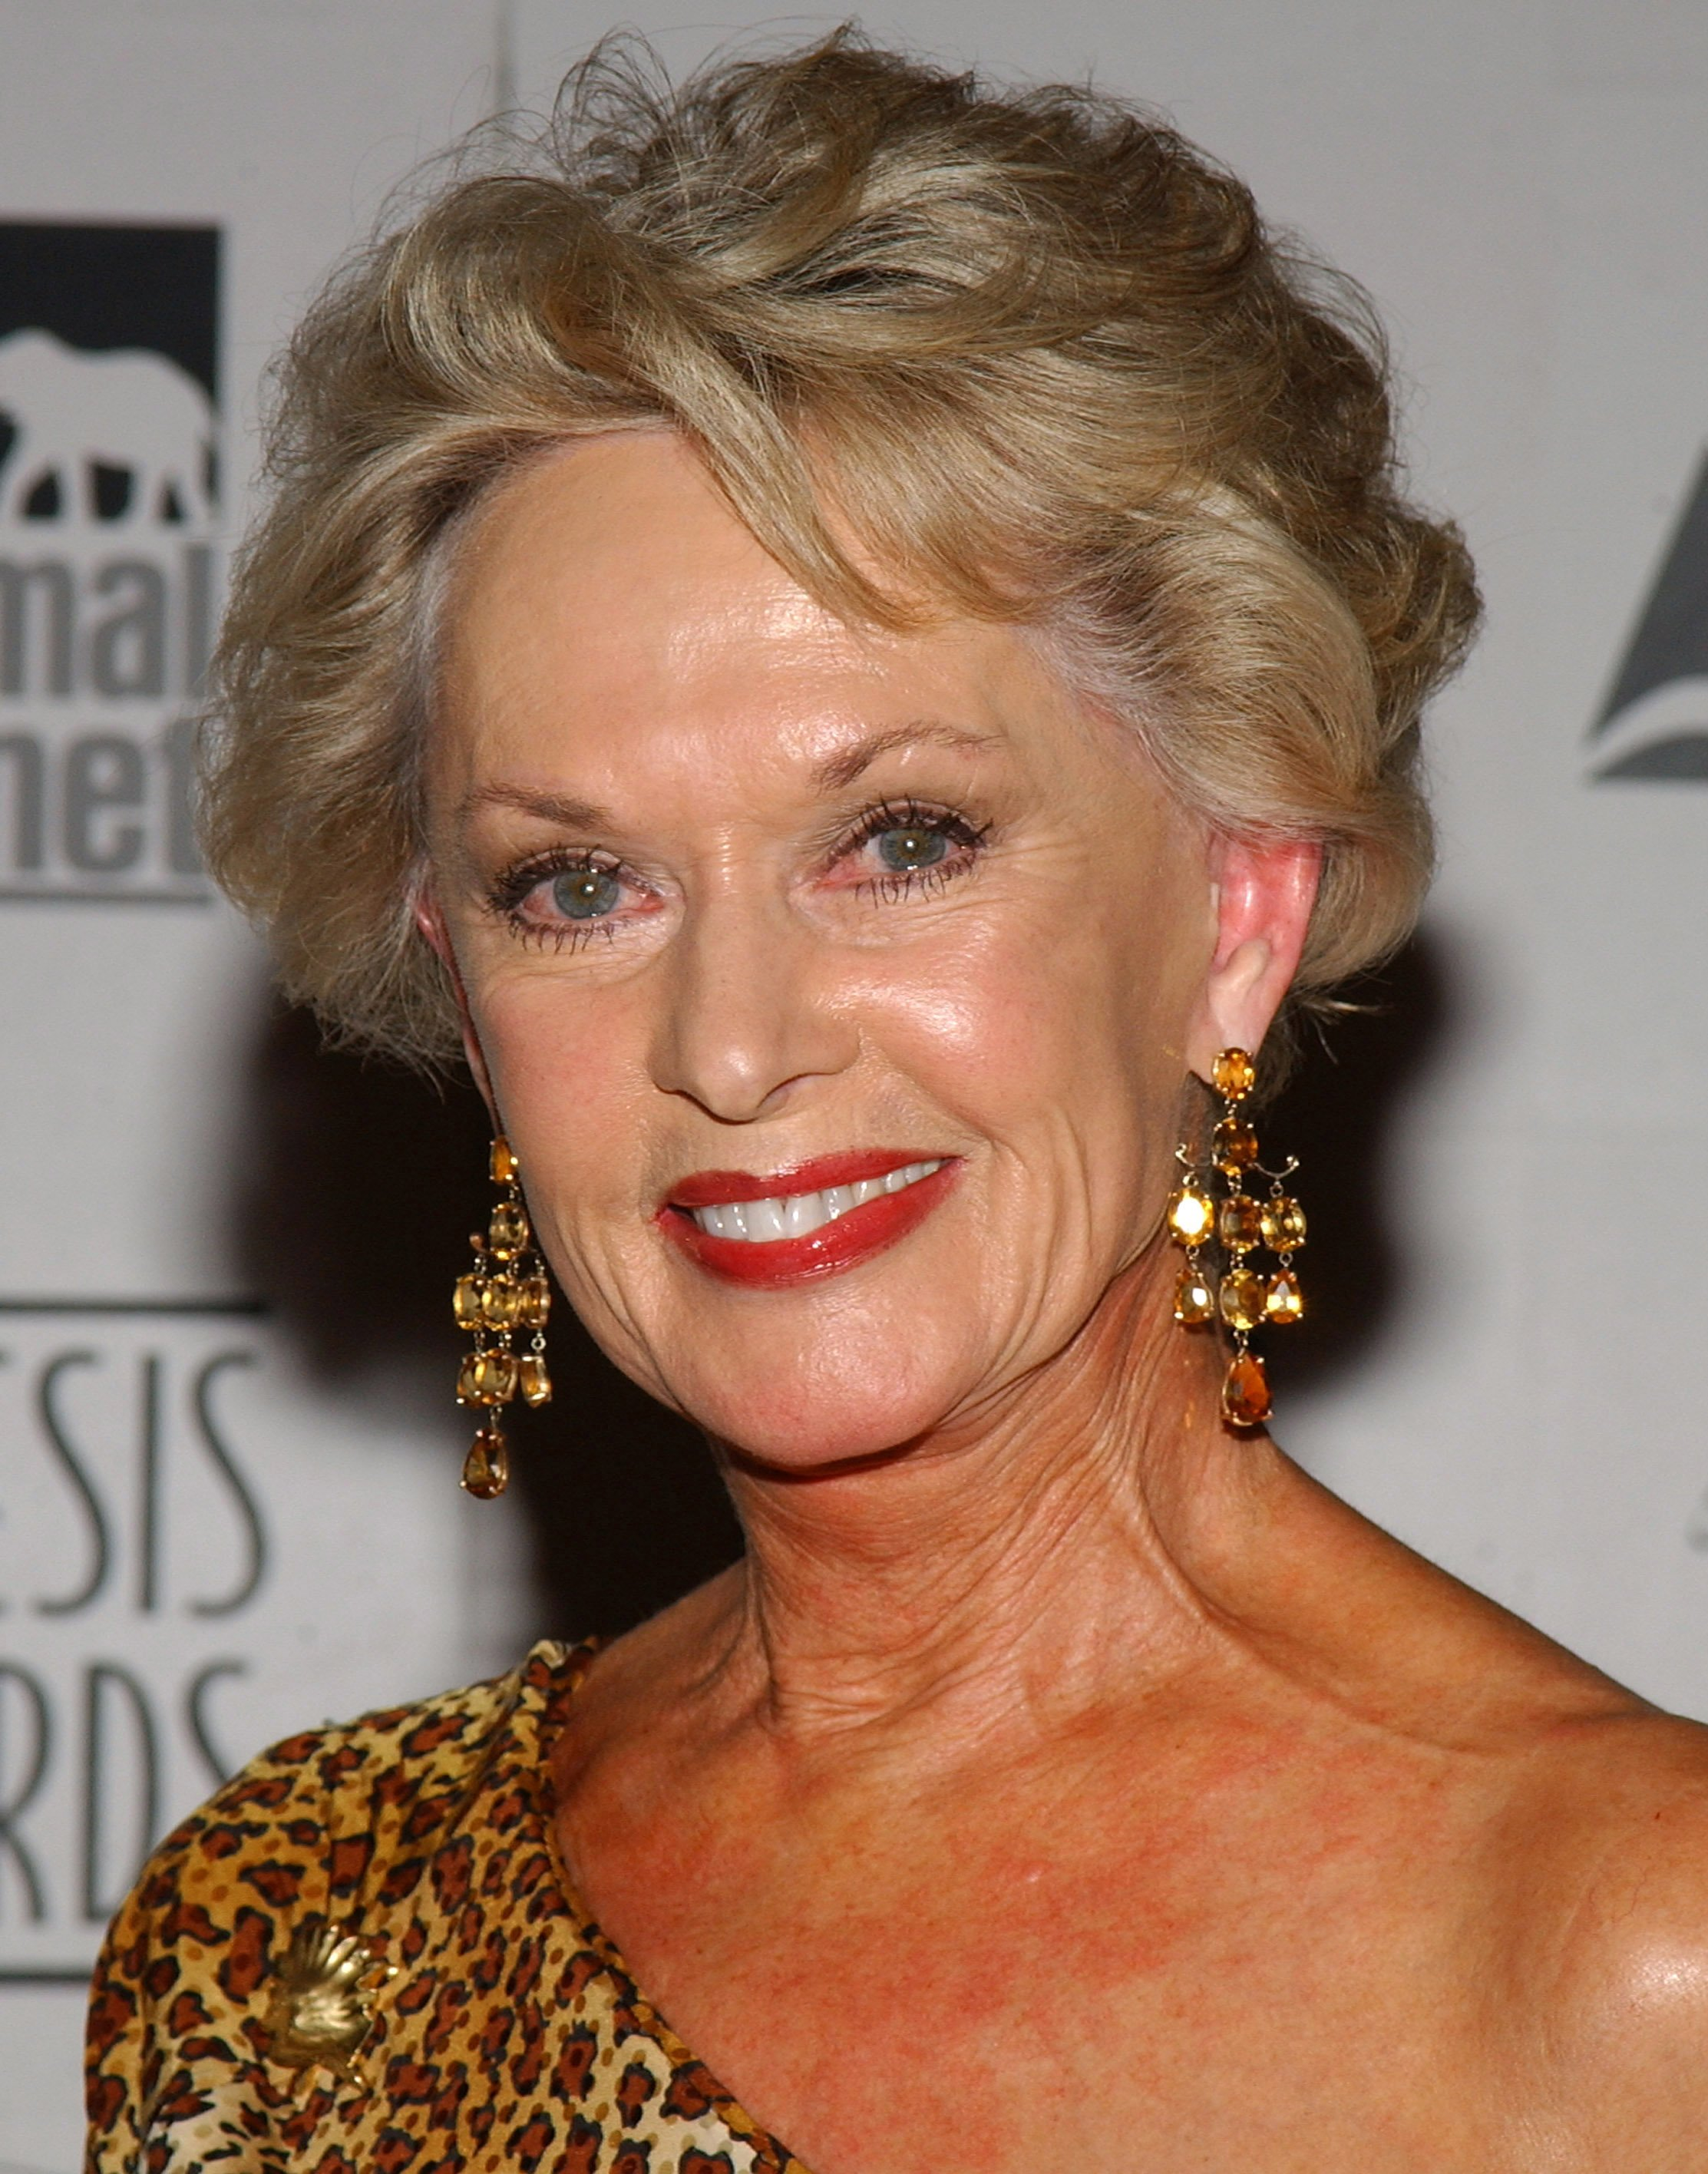 Tippi Hedren during The 18th Annual Genesis Awards and 50th Anniversary of the Humane Society of the United States. | Photo: Getty Images